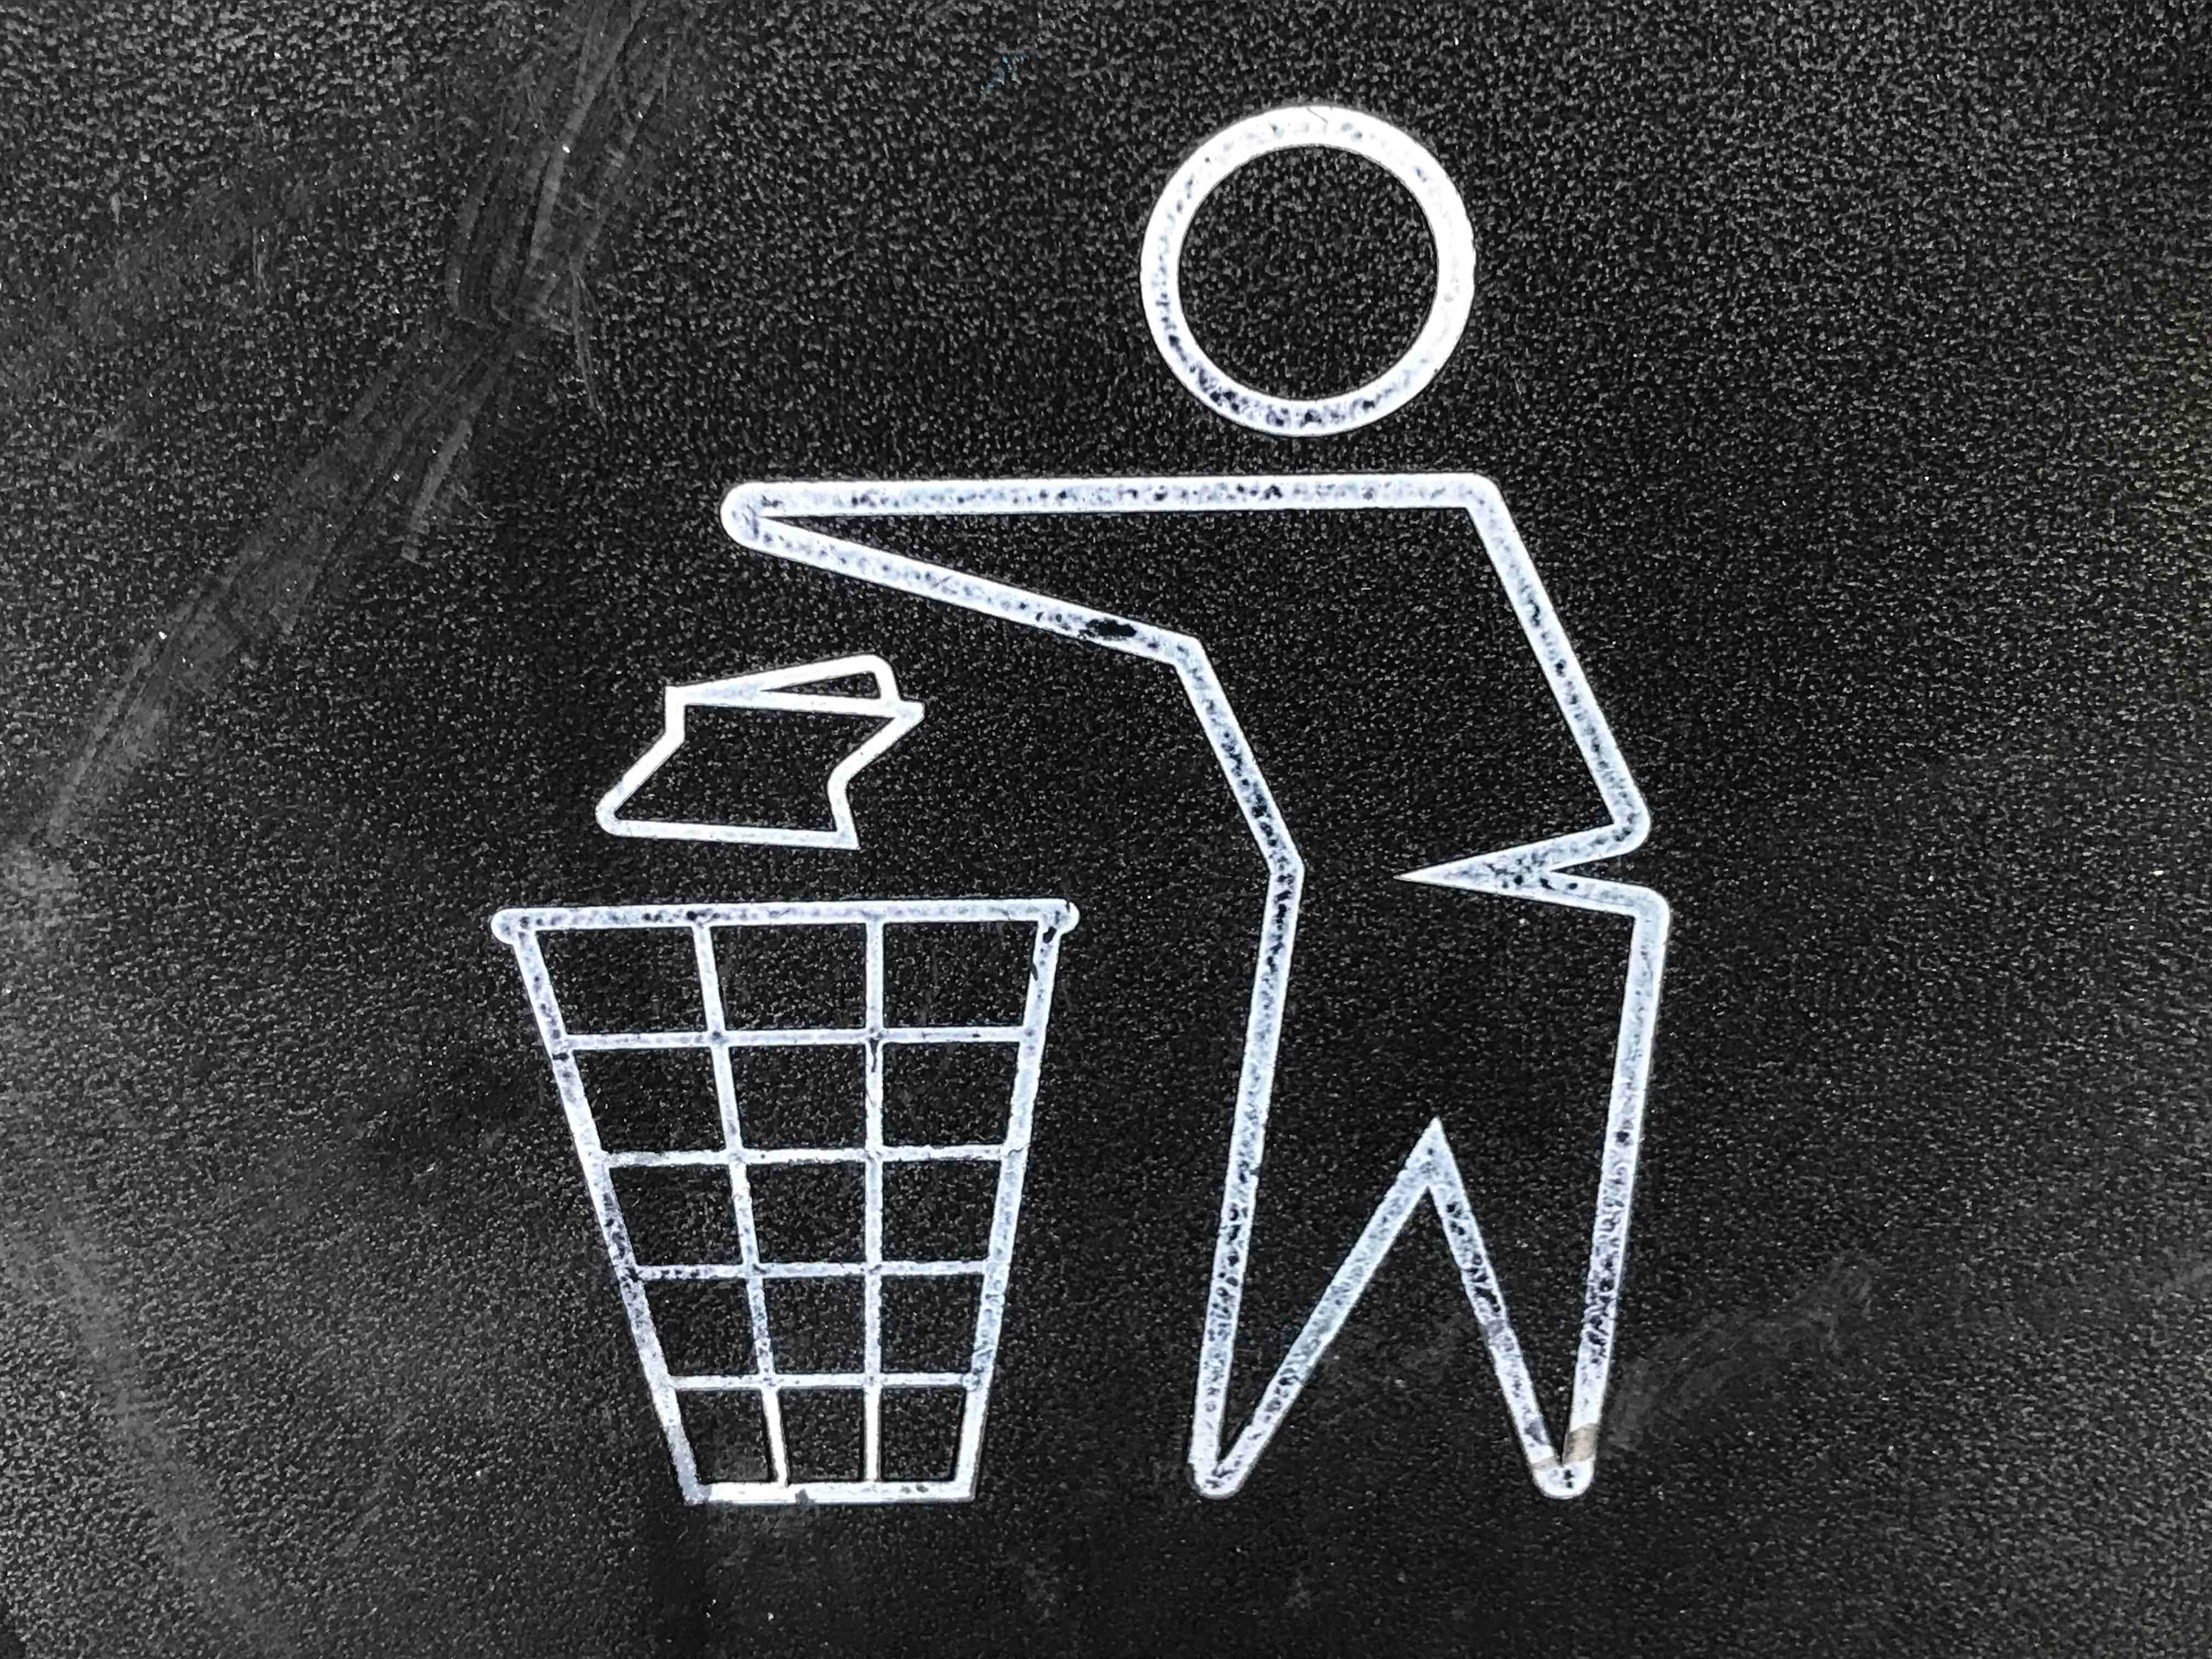 How to Handle the Waste We Produce